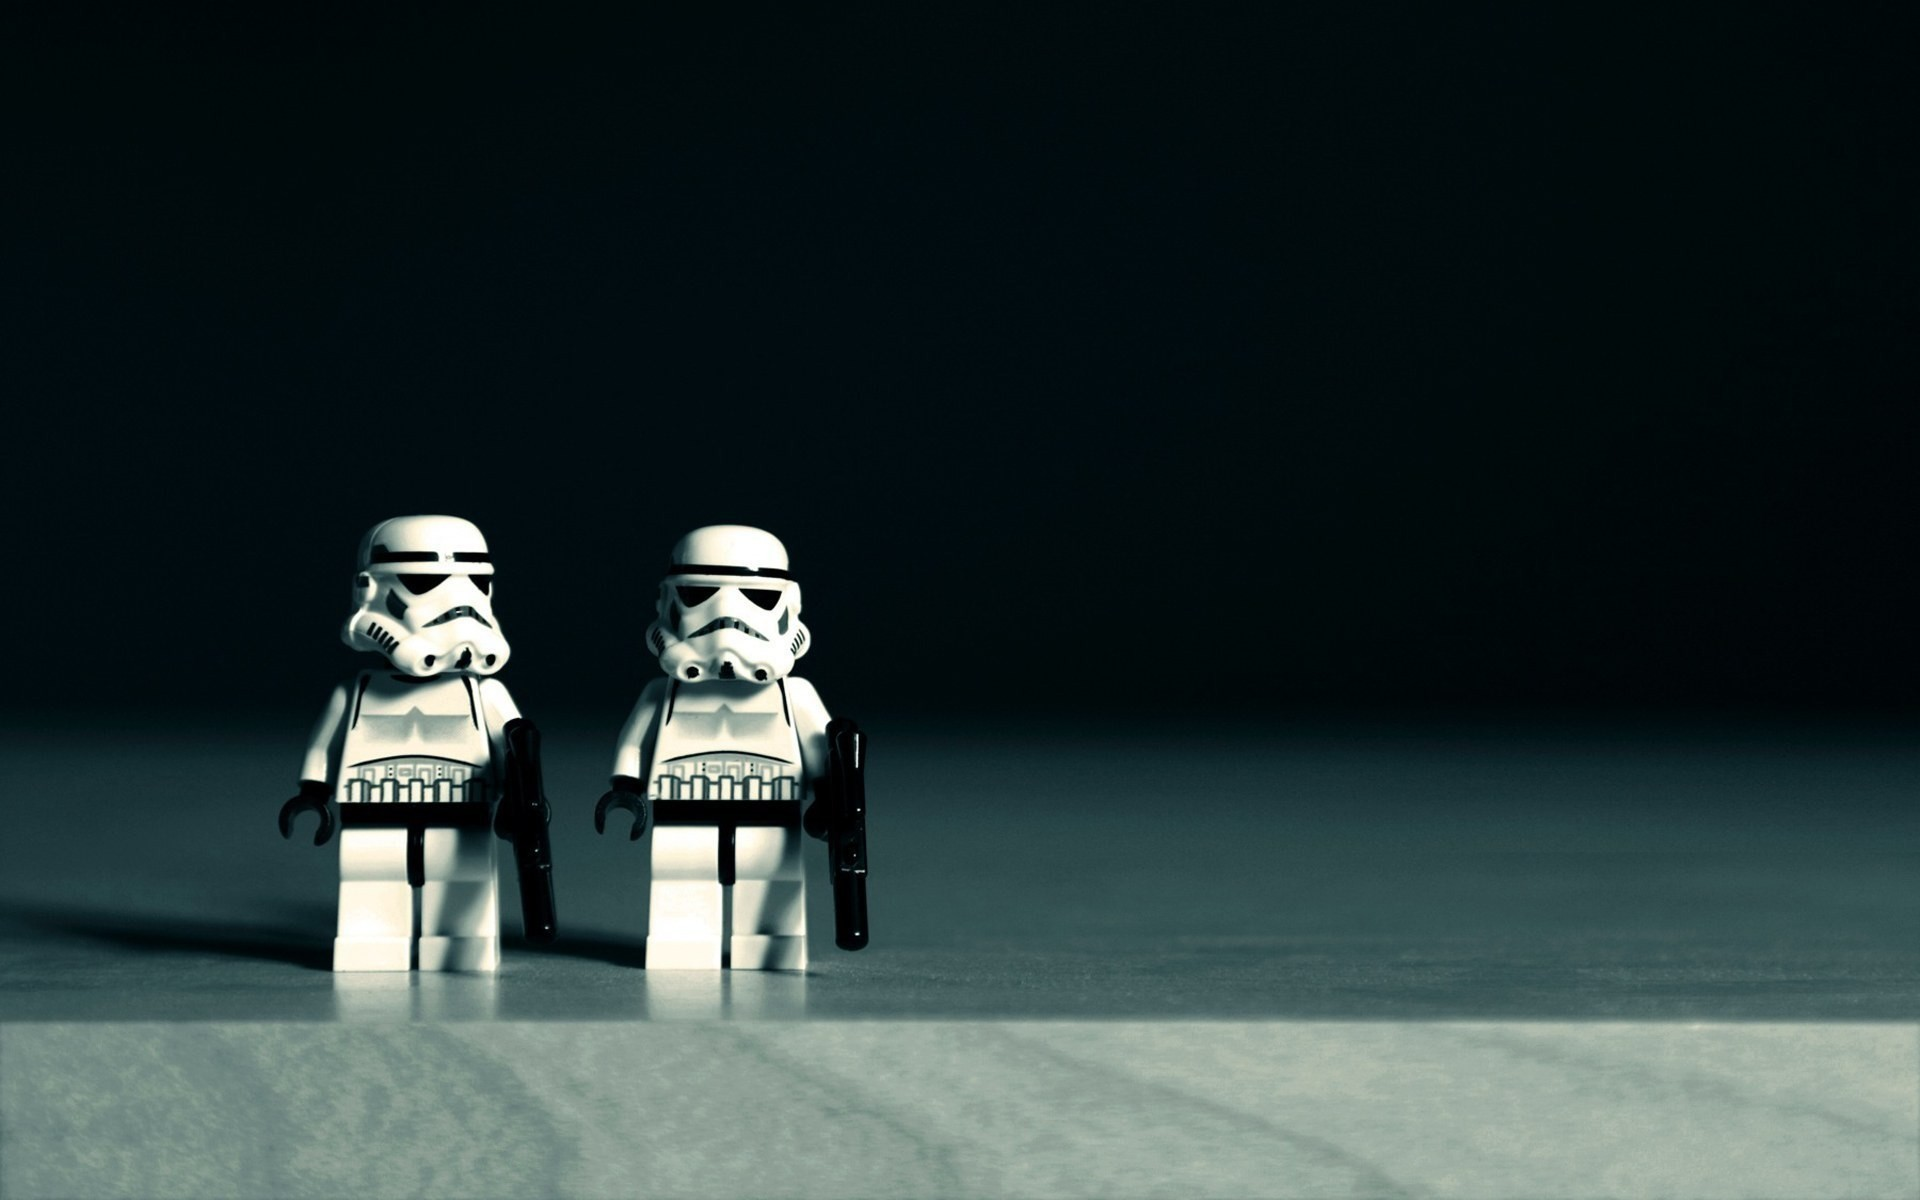 Stormtroopers Star Wars Lego Toys Desk HD Wallpaper – ZoomWalls